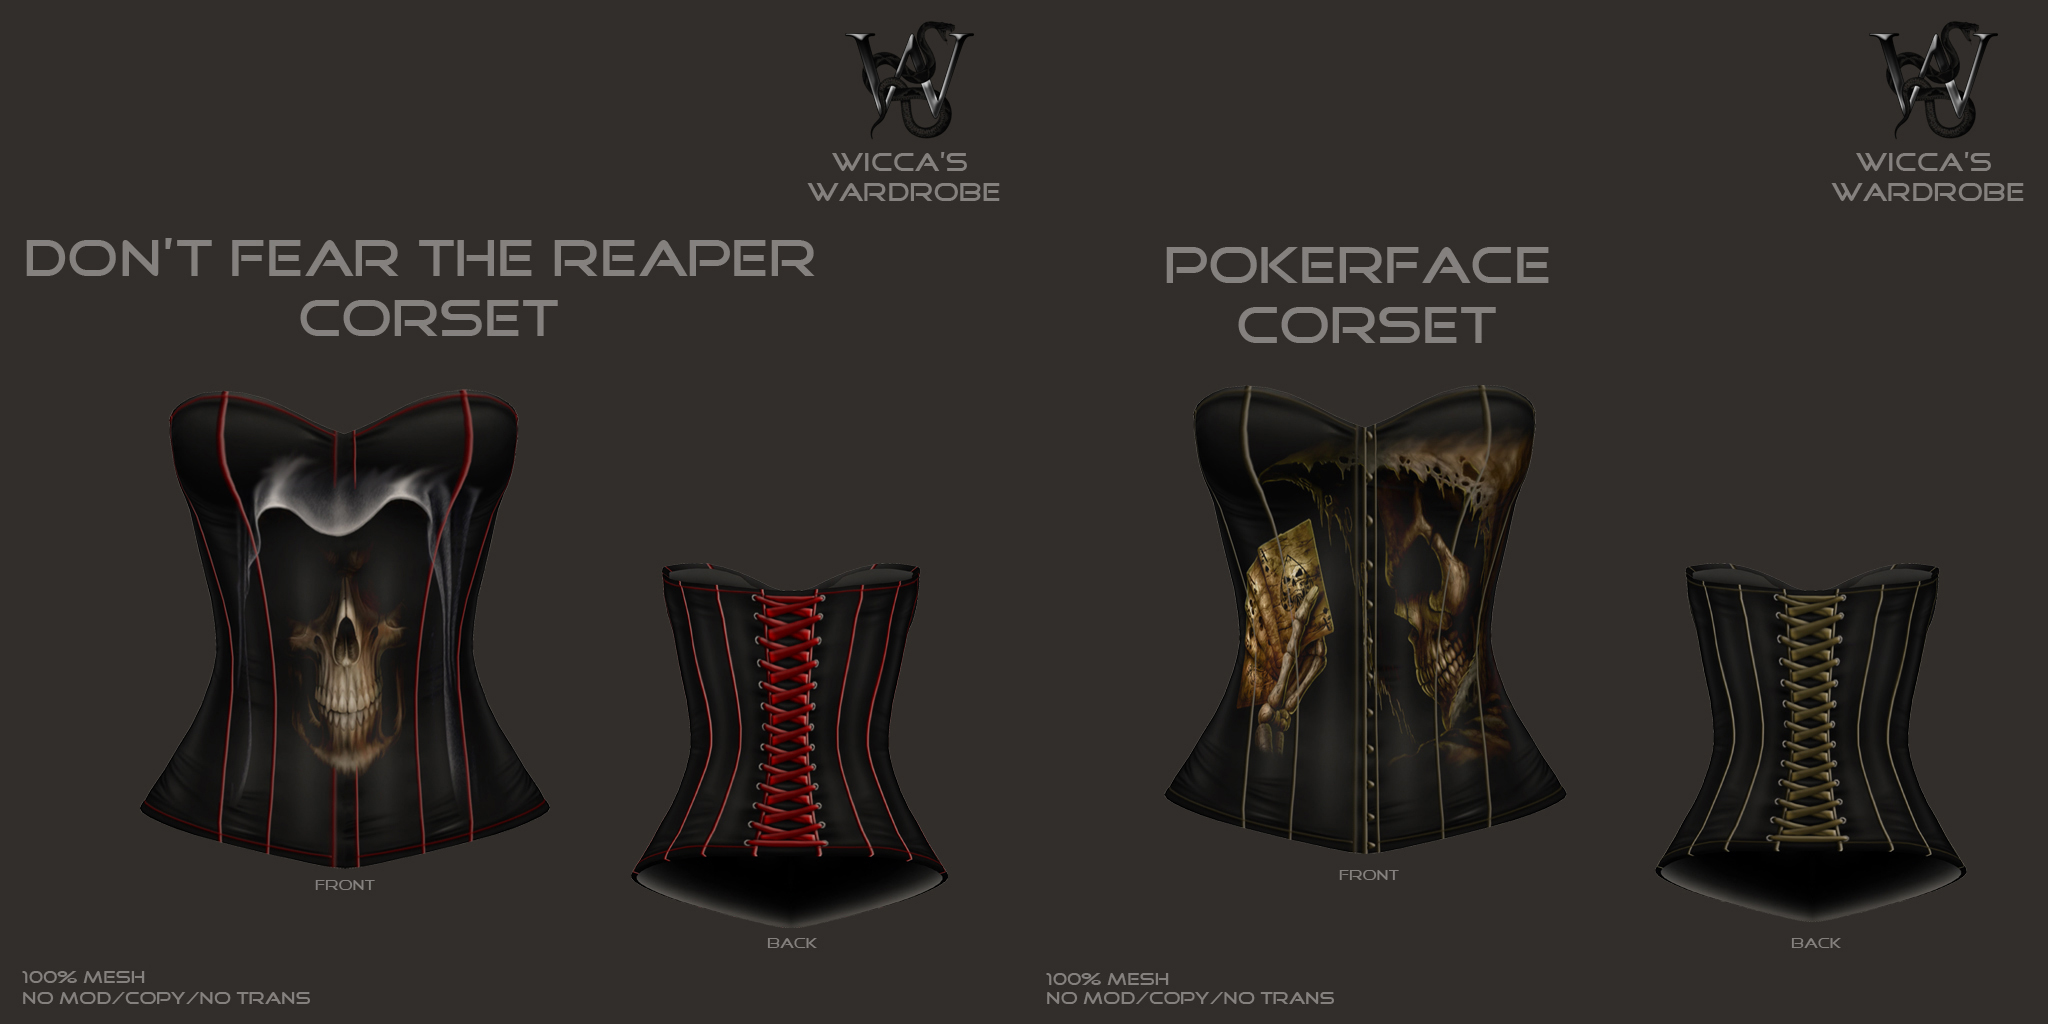 Reaper-Pokerface Corsets